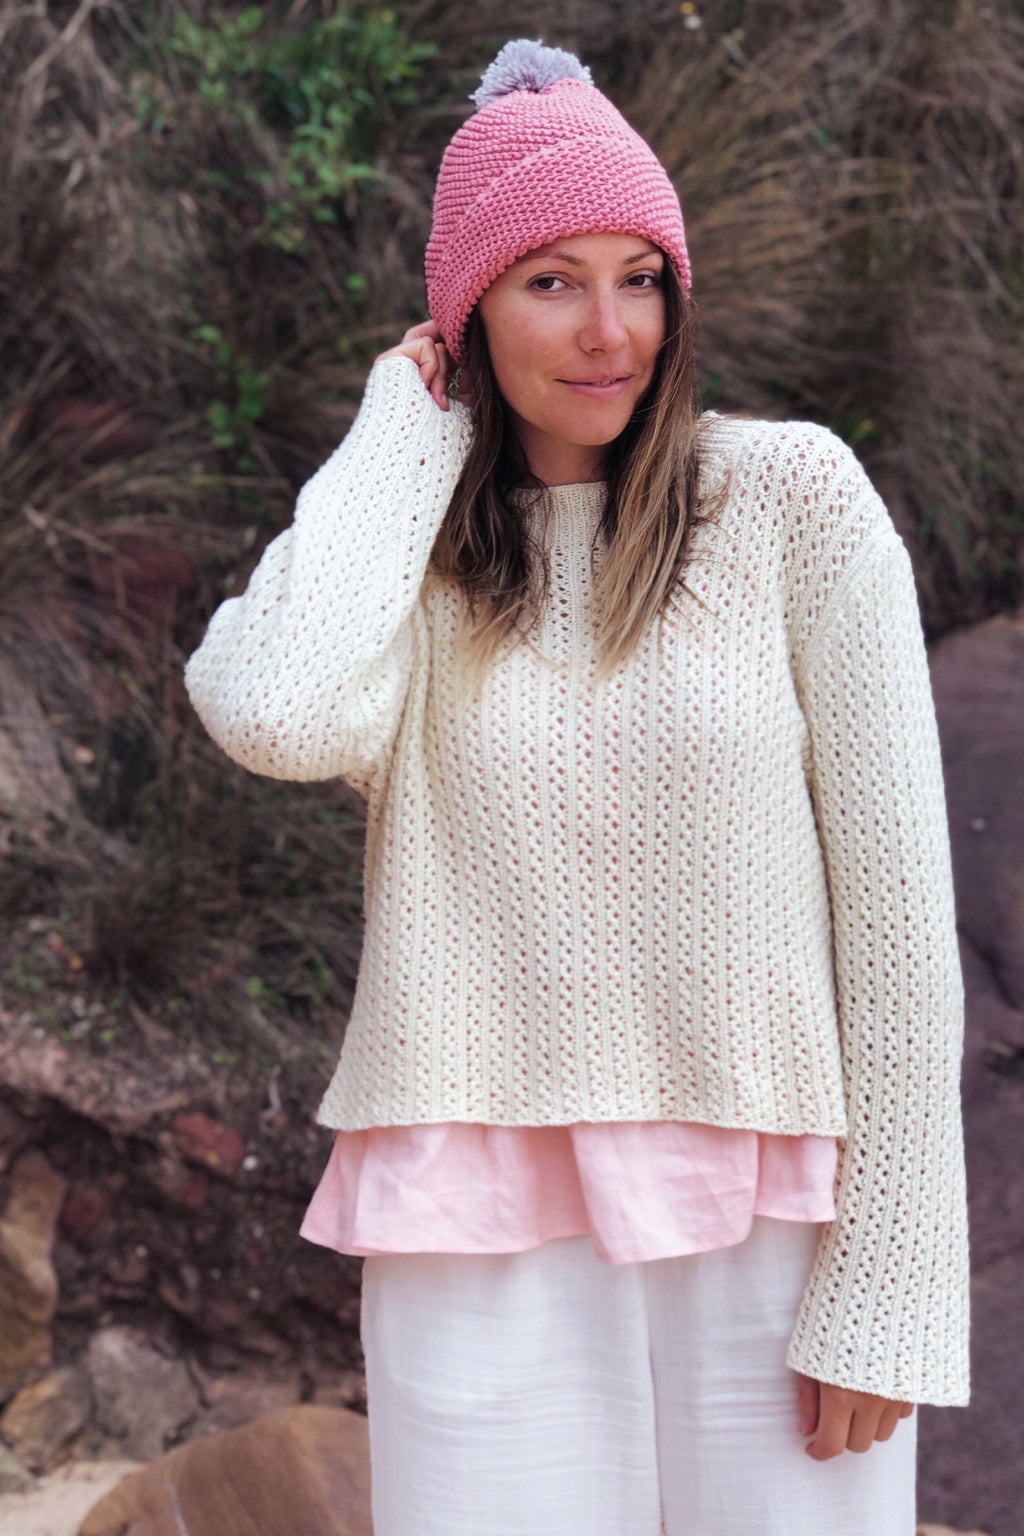 Cream Generations Hand-Knitted Jumper Jumpers The Fashion Advocate ethical Australian fashion designer boutique Melbourne sustainable clothes